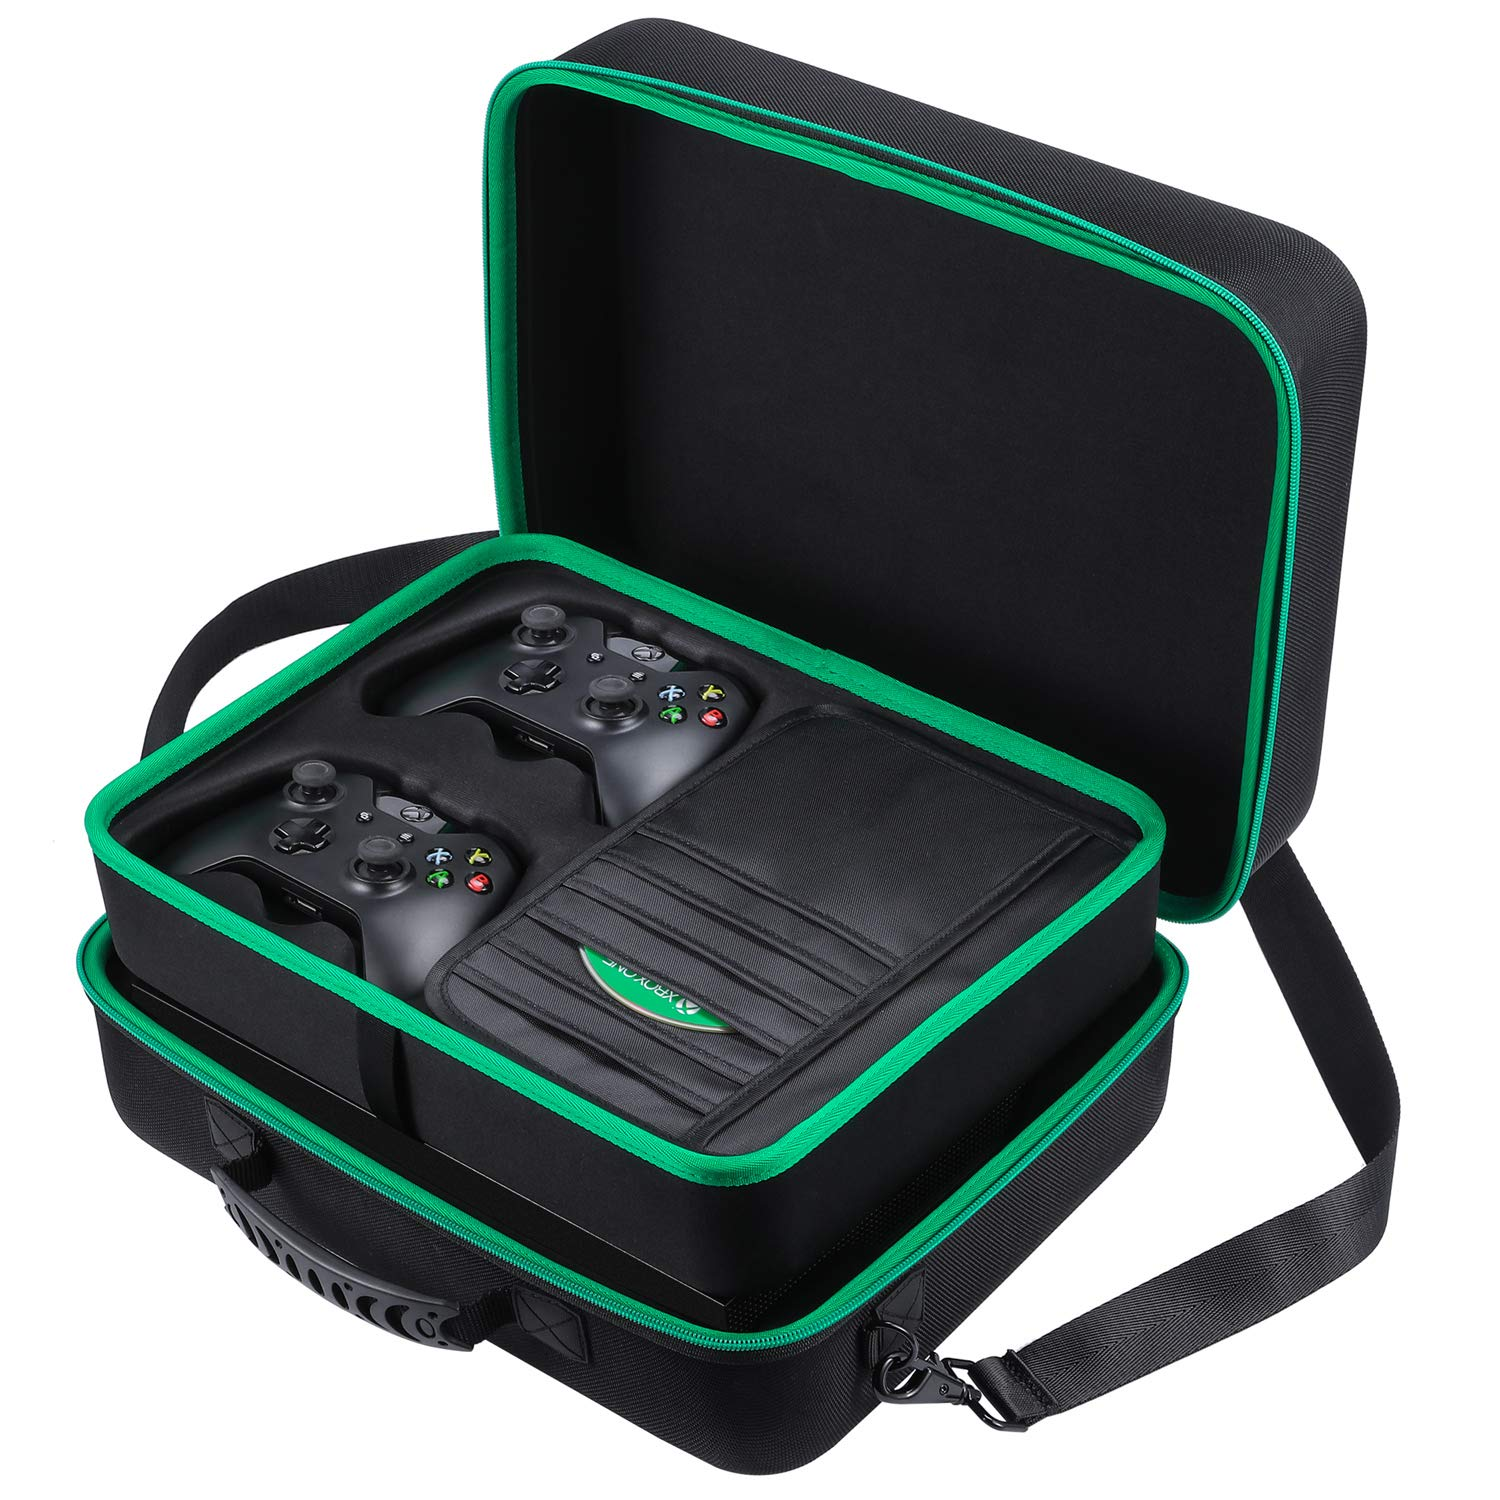 Zadii Hard Carrying Case Compatible with Xbox One X Fit Xbox One X Console 2 Wireless Controllers Power Cable HDMI Cable Game Discs and Other Accessories